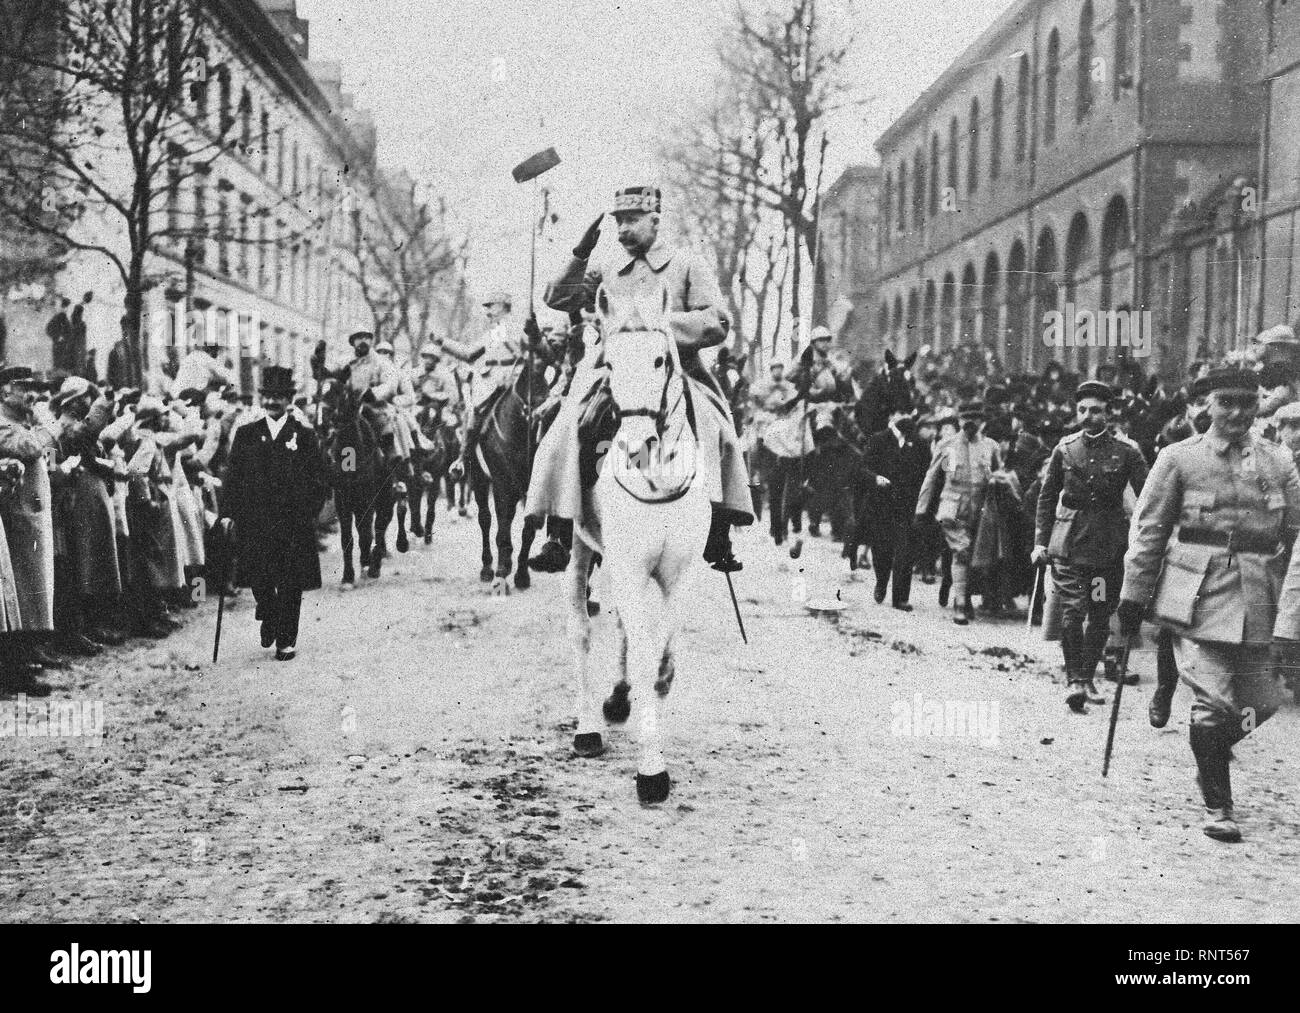 General Petain leads victorious French Armies into the city of Metz - Stock Image